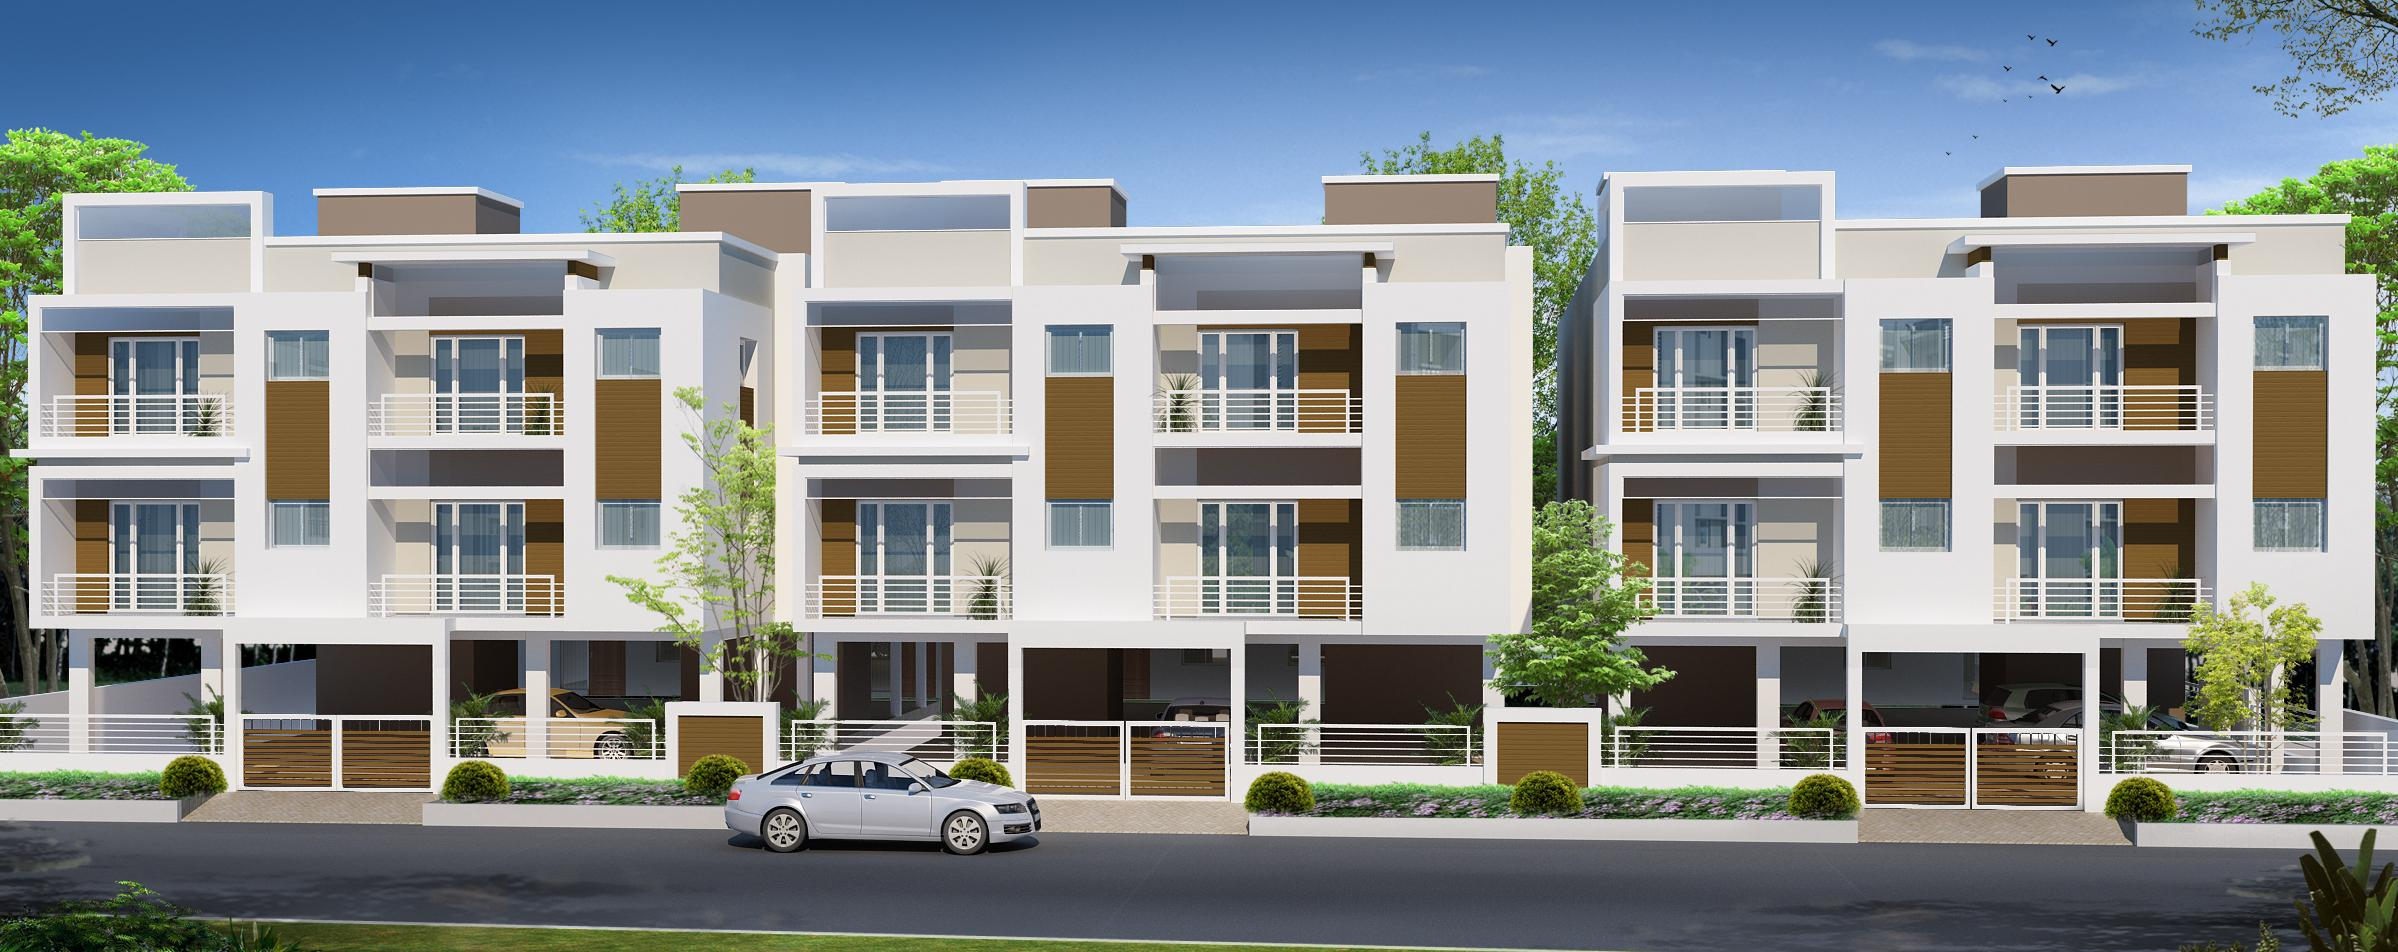 Front Elevation Row Houses : Row housing elevation design gharexpert